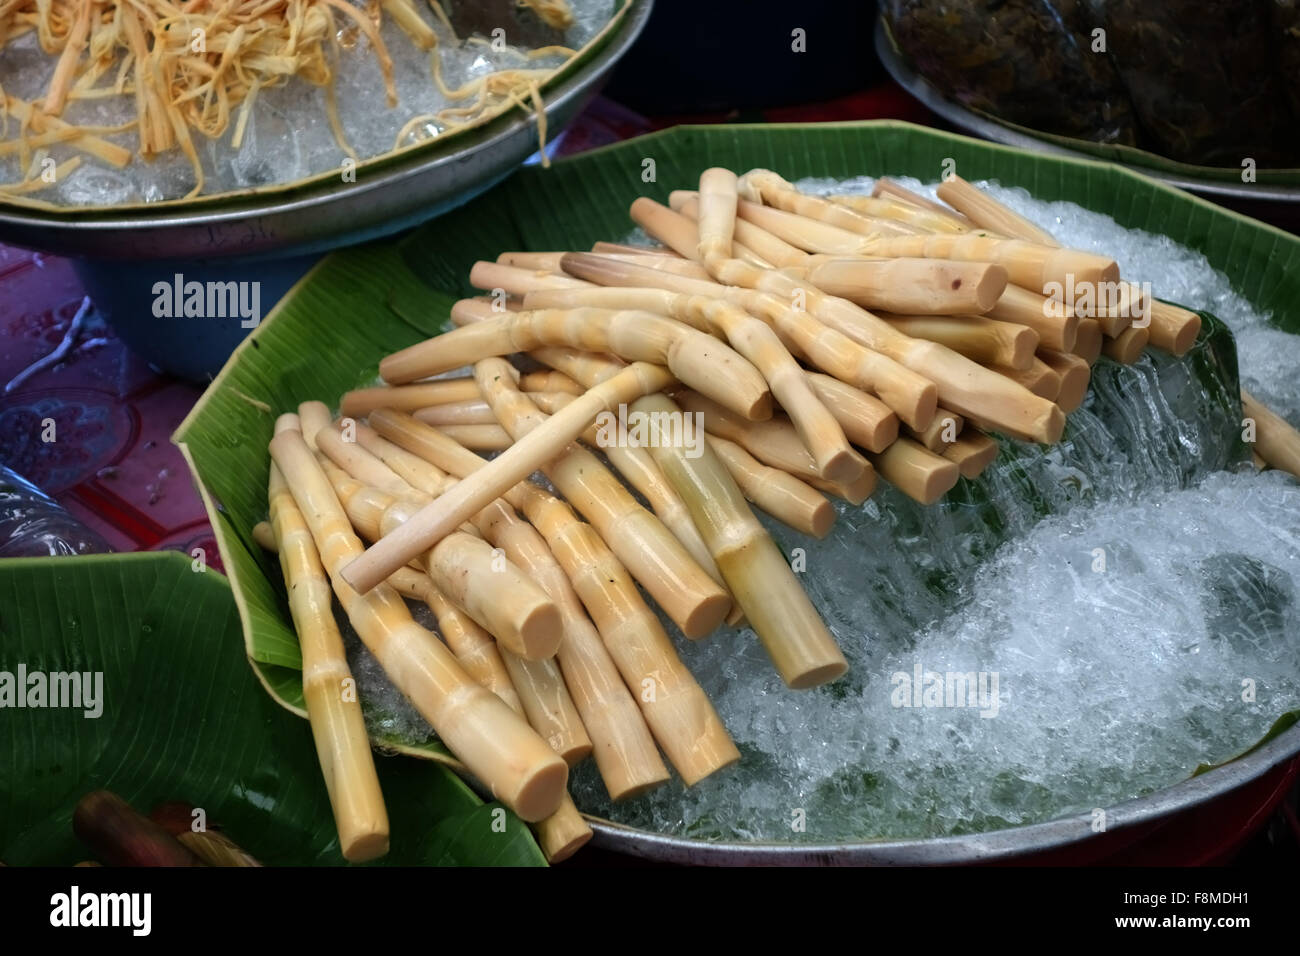 Bamboo shoots on ice prepared for sale in a covered market in ther centre of Bangkok, Thailand, February - Stock Image